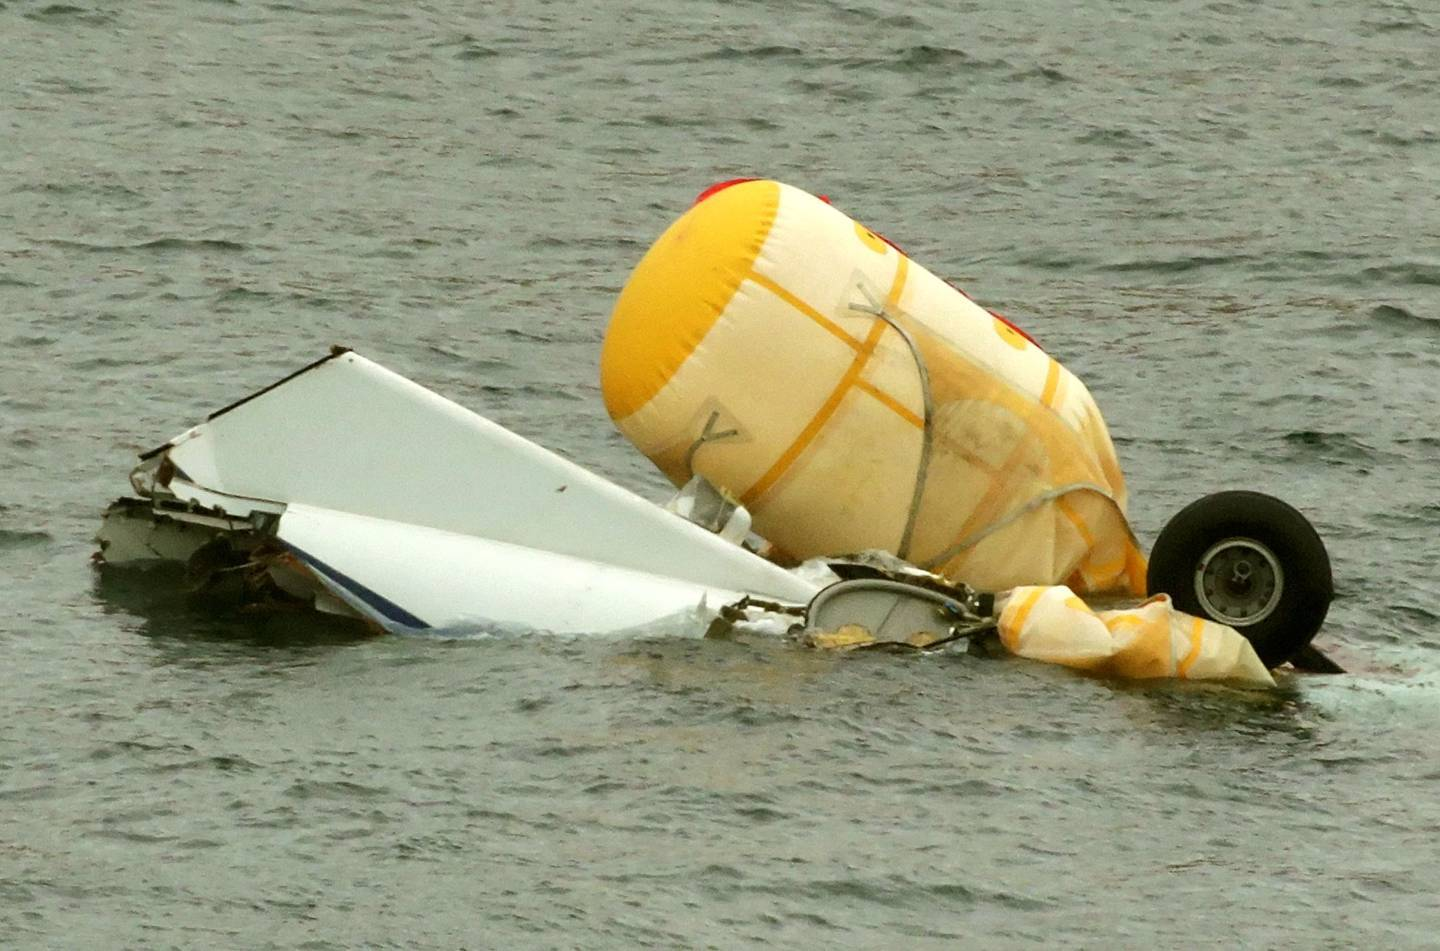 The wreckage of the Super Puma L2 helicopter which went down in the North Sea with the loss of four lives around two miles west of Sumburgh airport